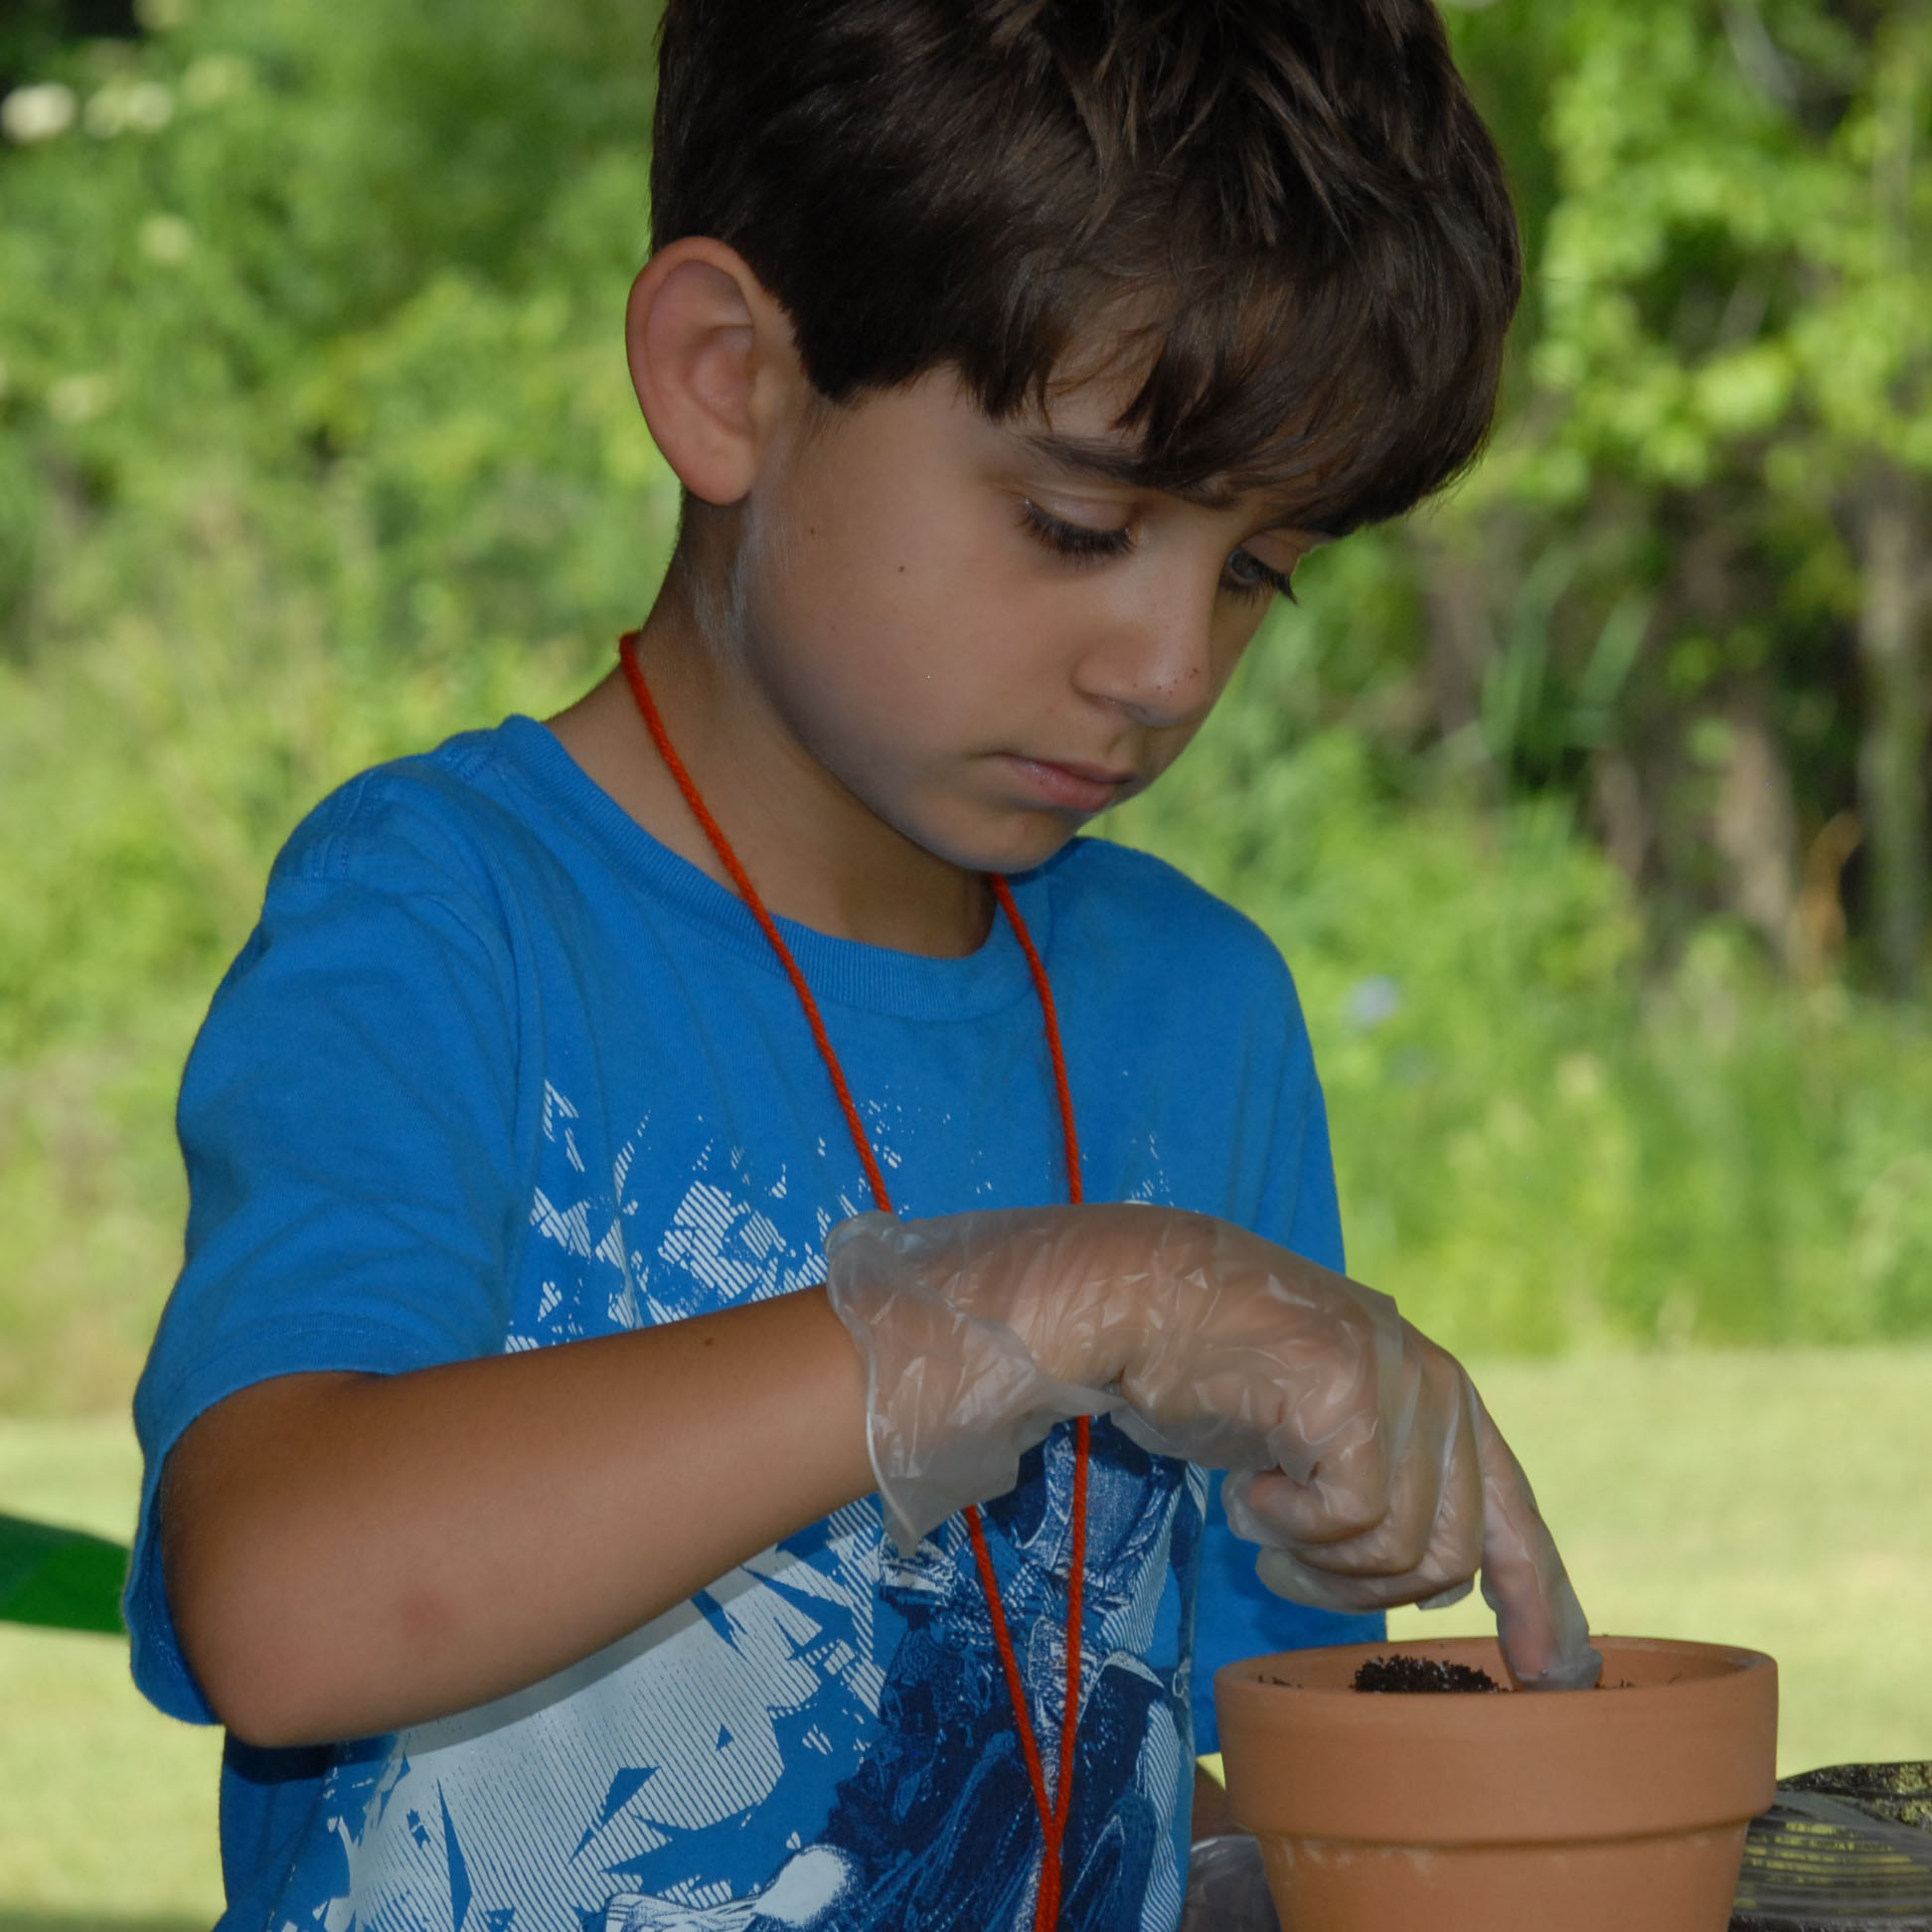 boy in blue with clay pot.jpg thumbnail